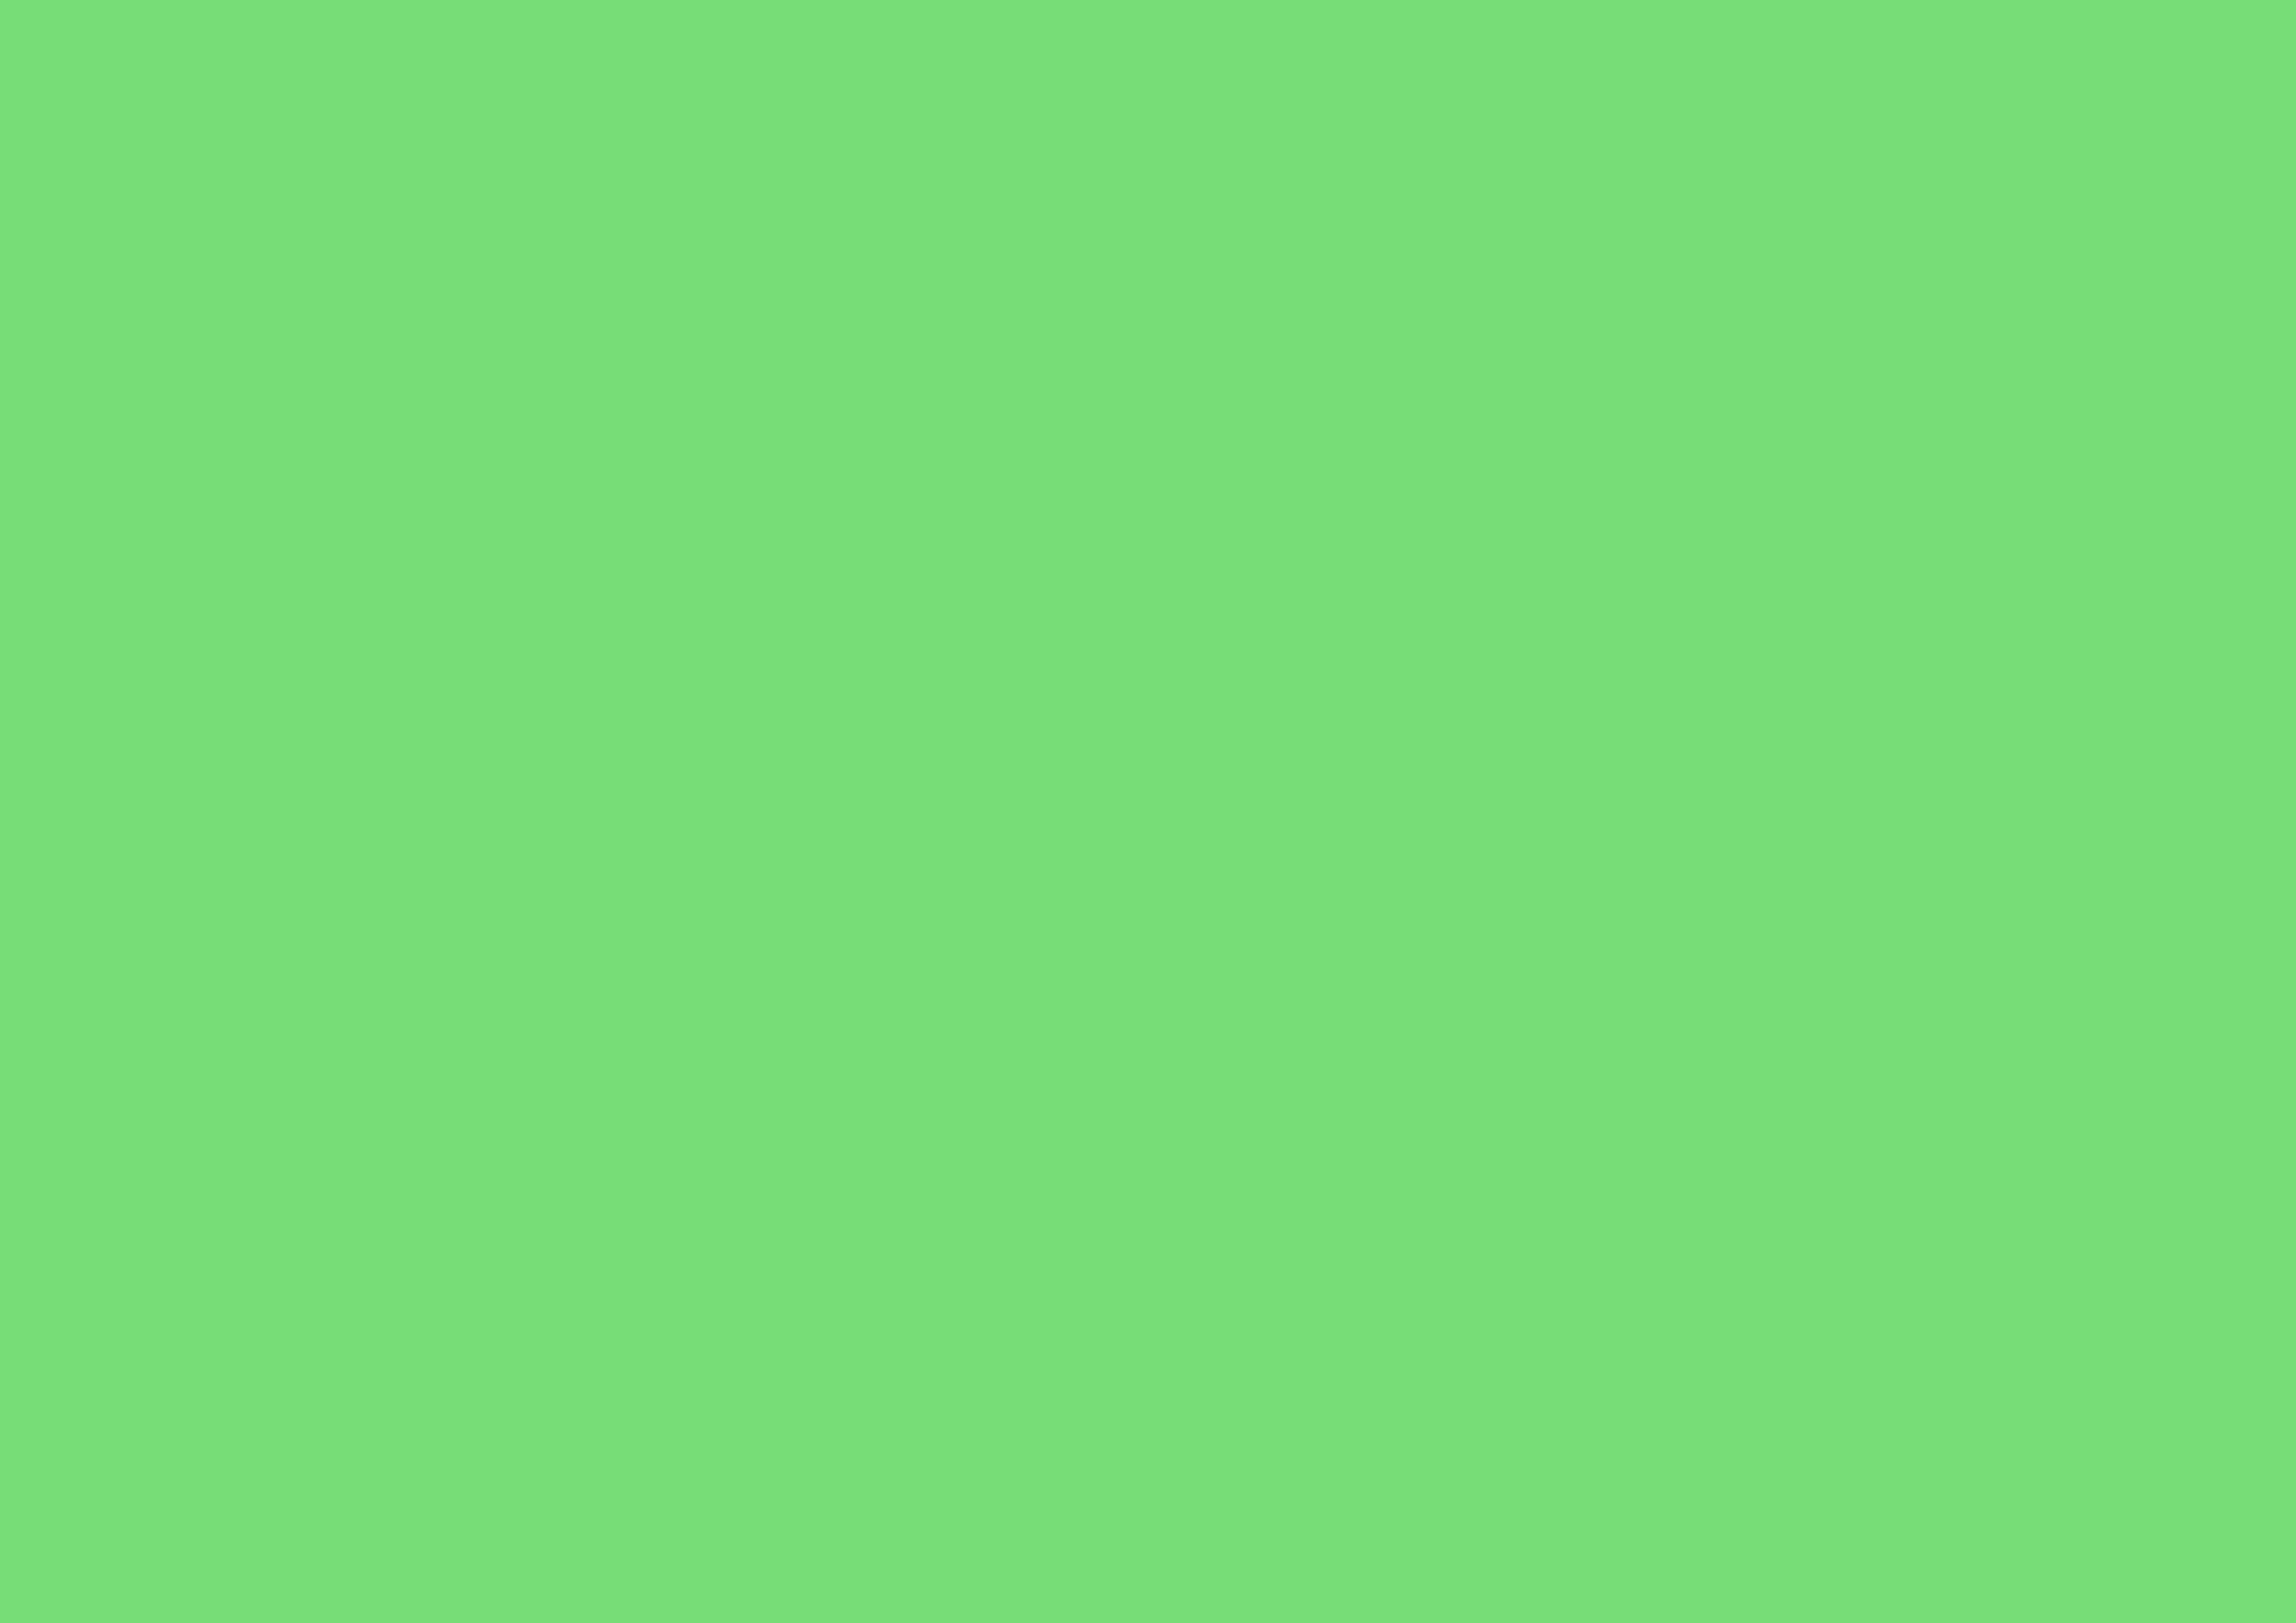 3508x2480 Pastel Green Solid Color Background